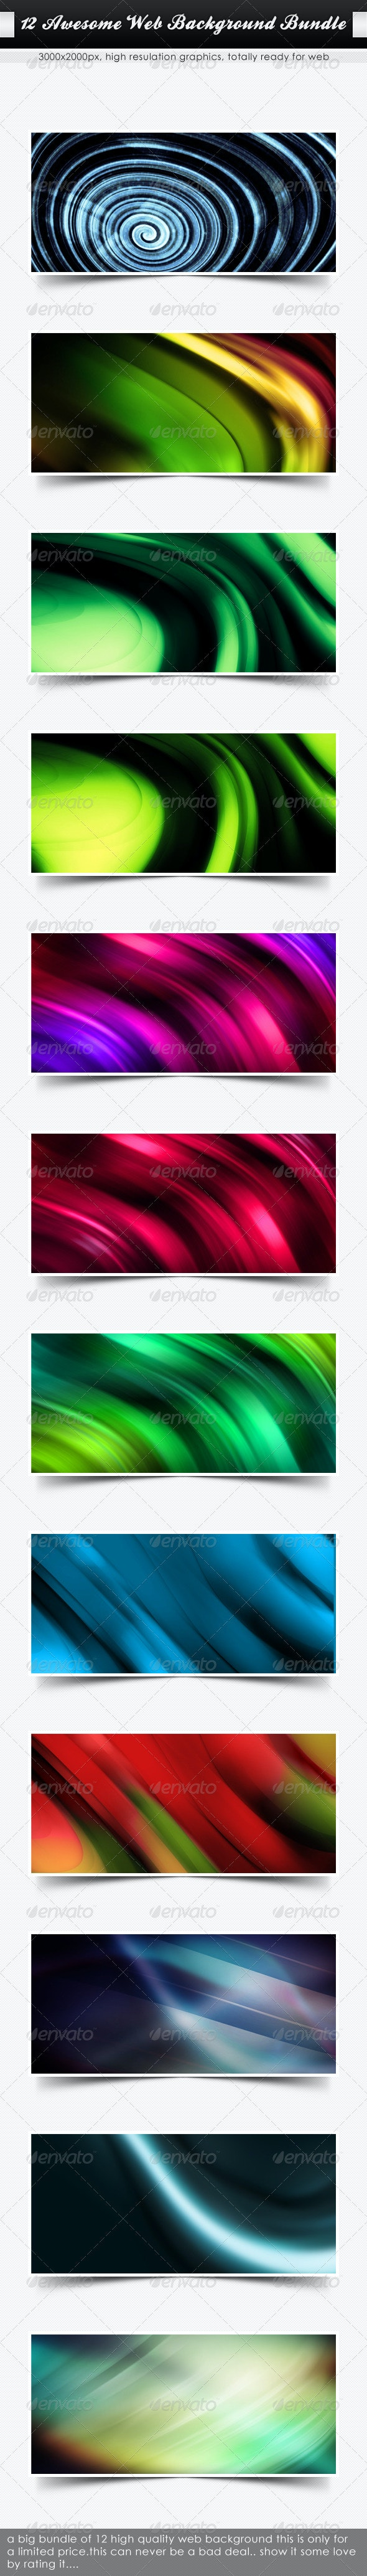 12 HQ Background Pack (Web Bundle-XL ) - Abstract Backgrounds